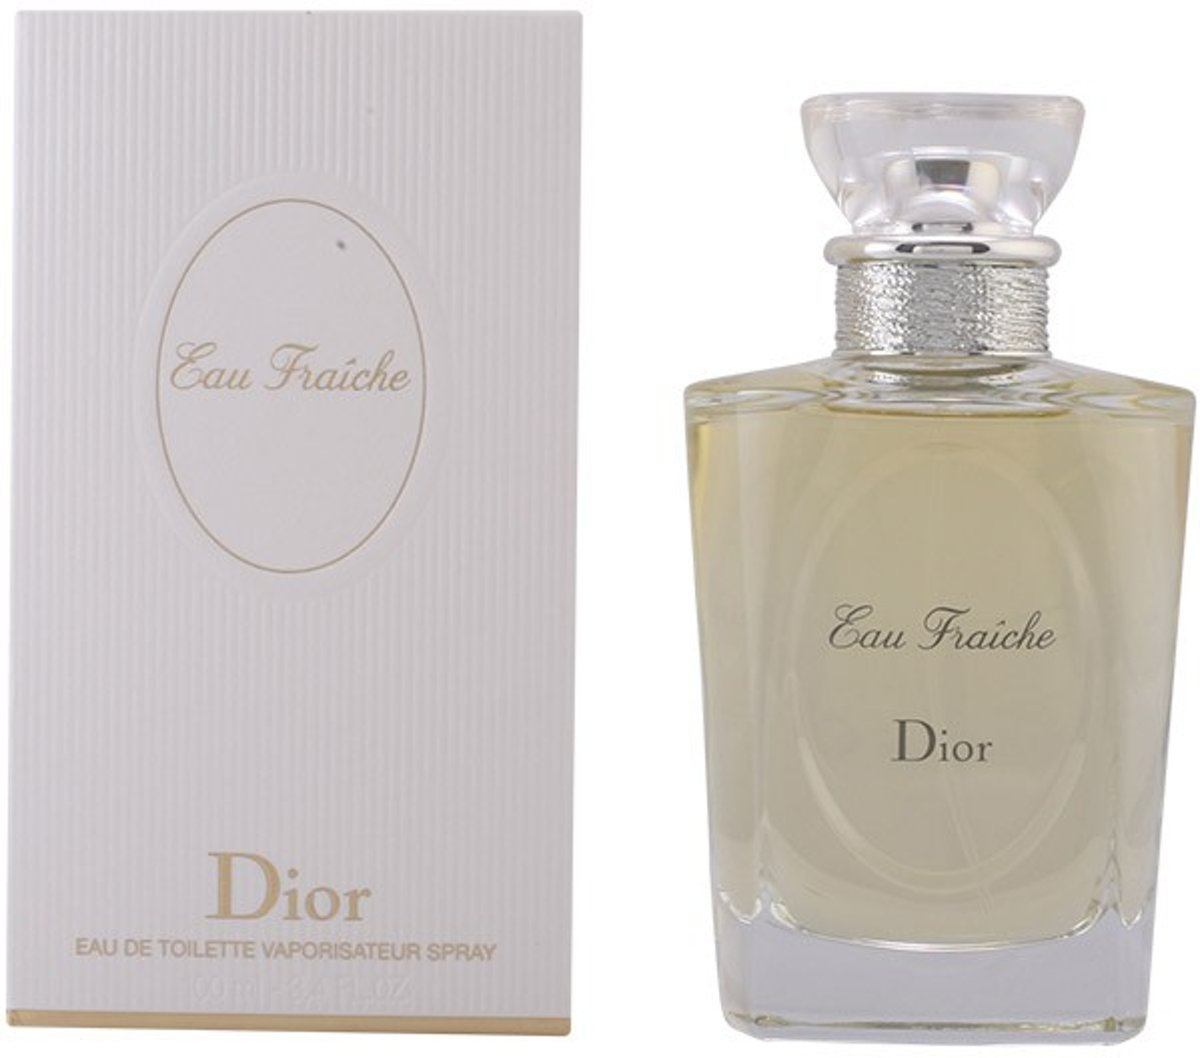 MULTI BUNDEL 2 stuks DIOR EAU FRAICHE Eau de Toilette Spray 100 ml